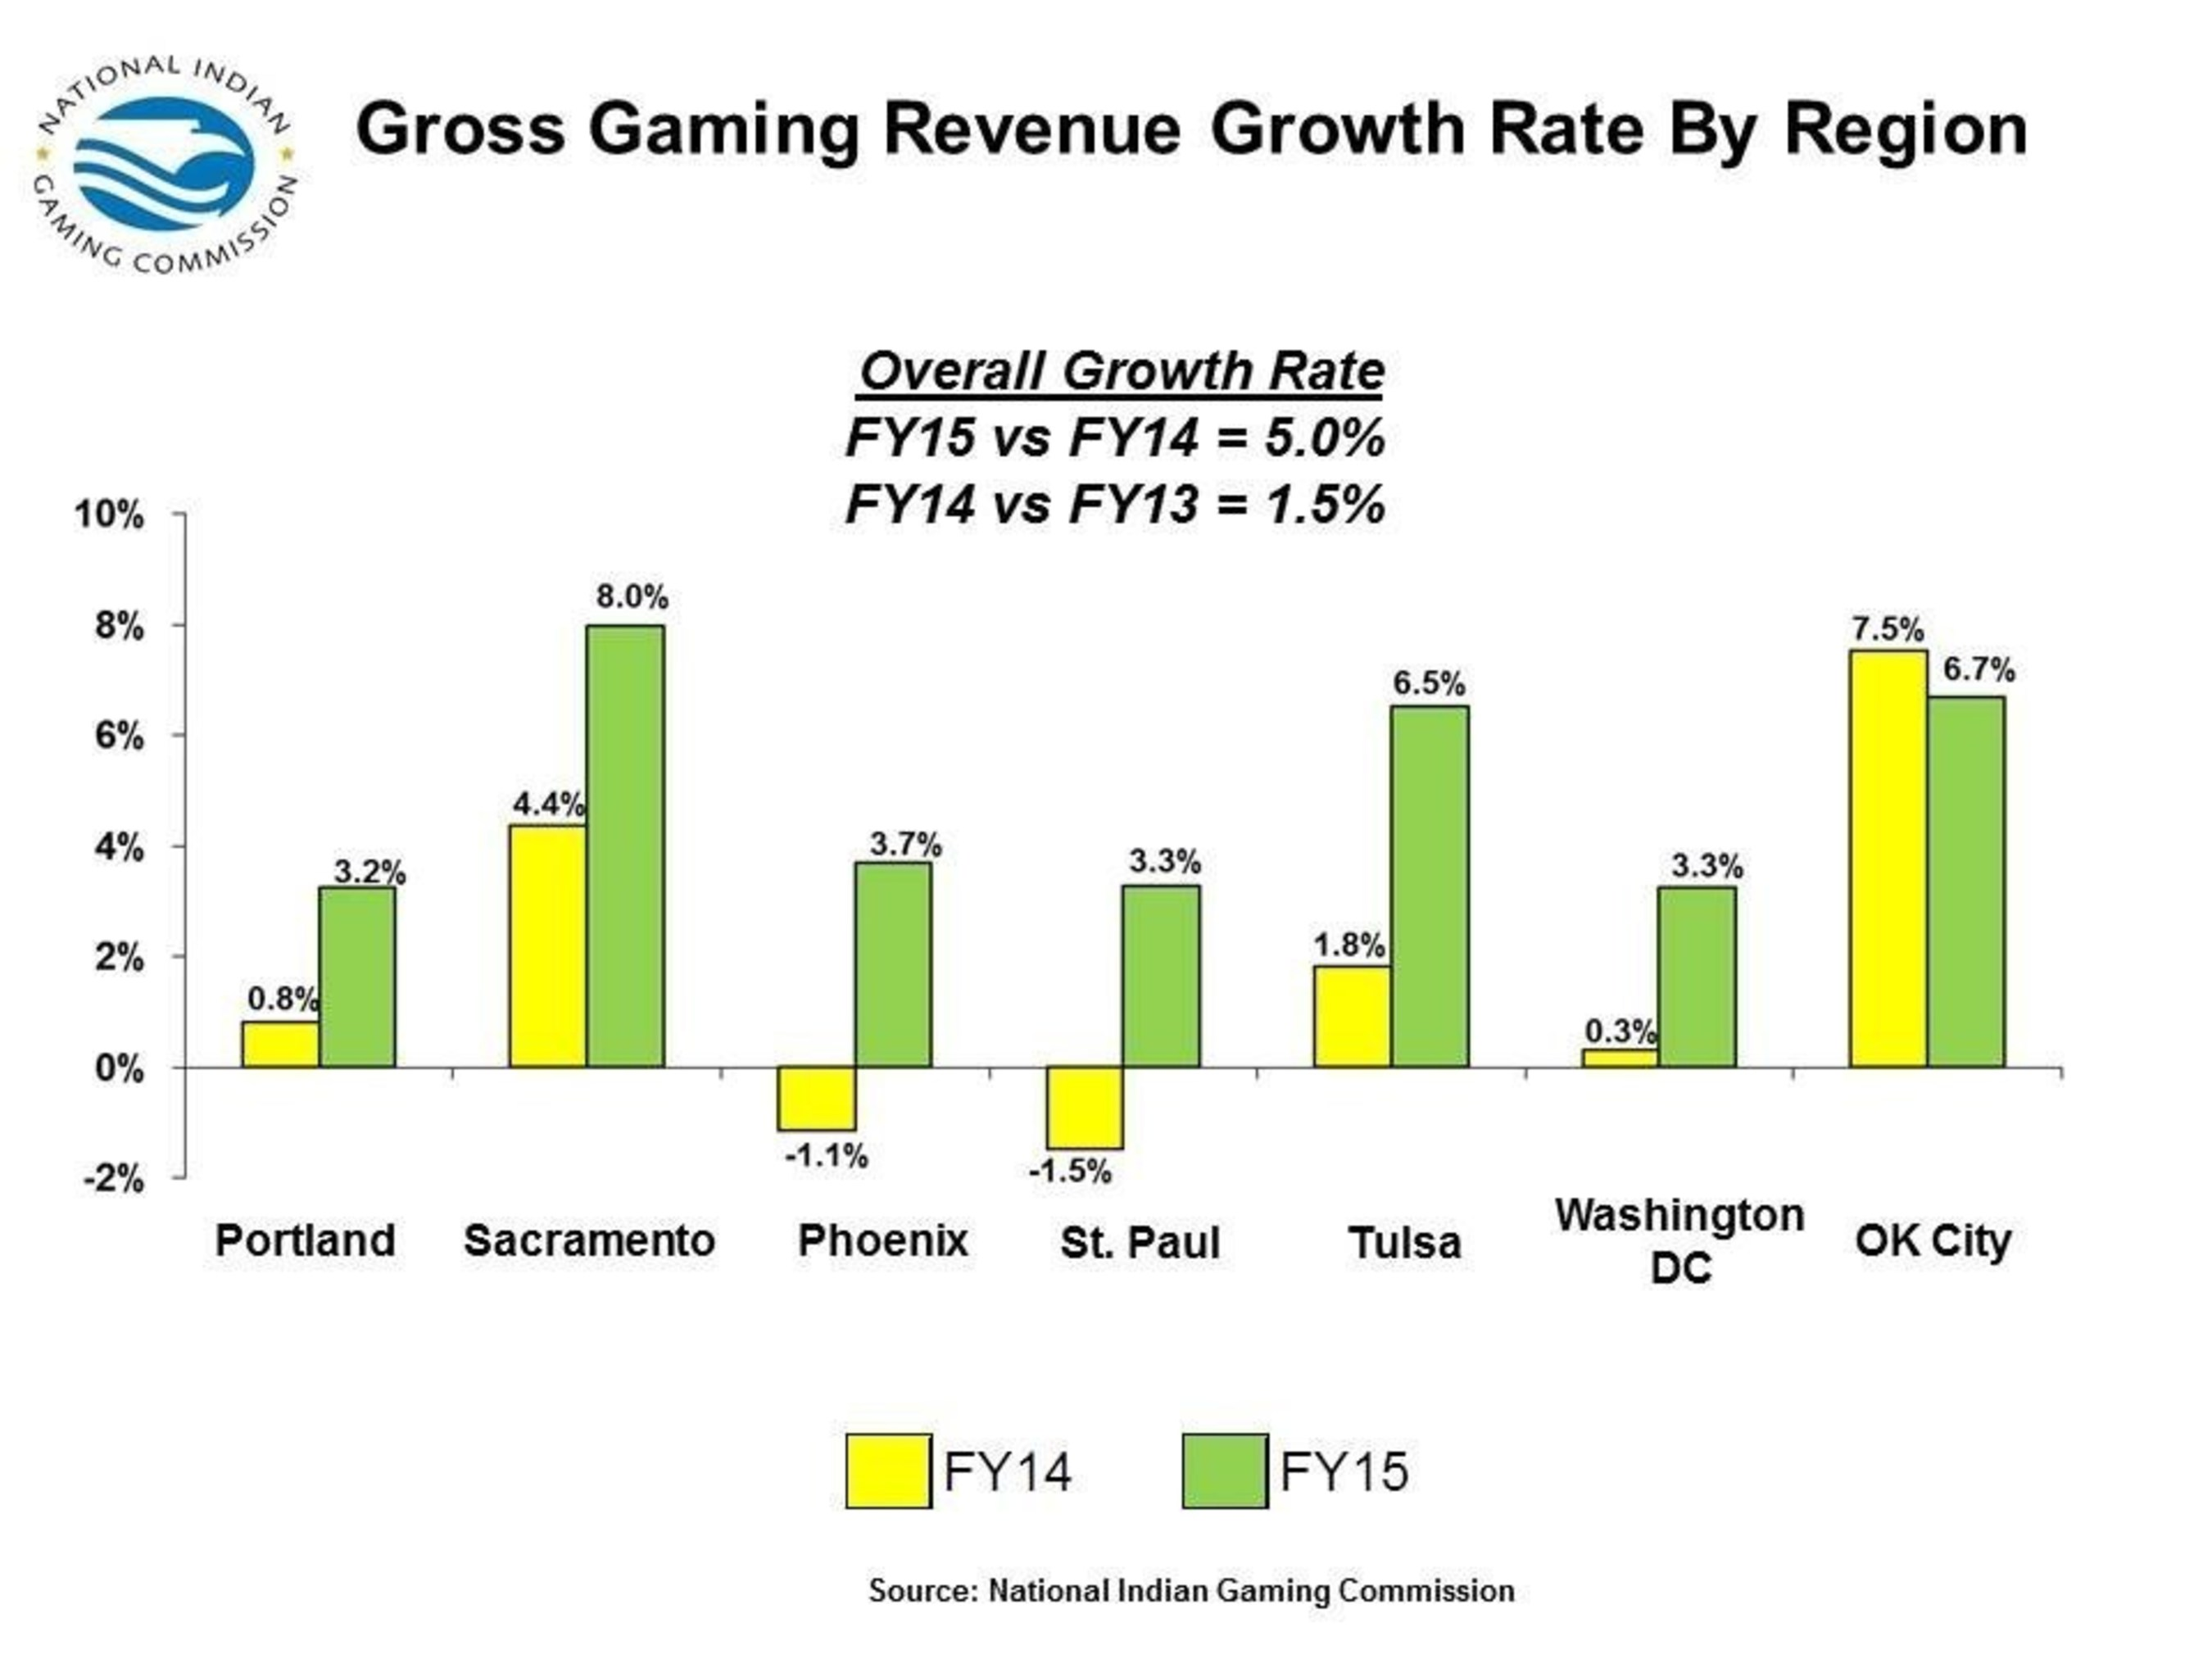 2015 Gross Gaming Revenue Growth Rate By Region